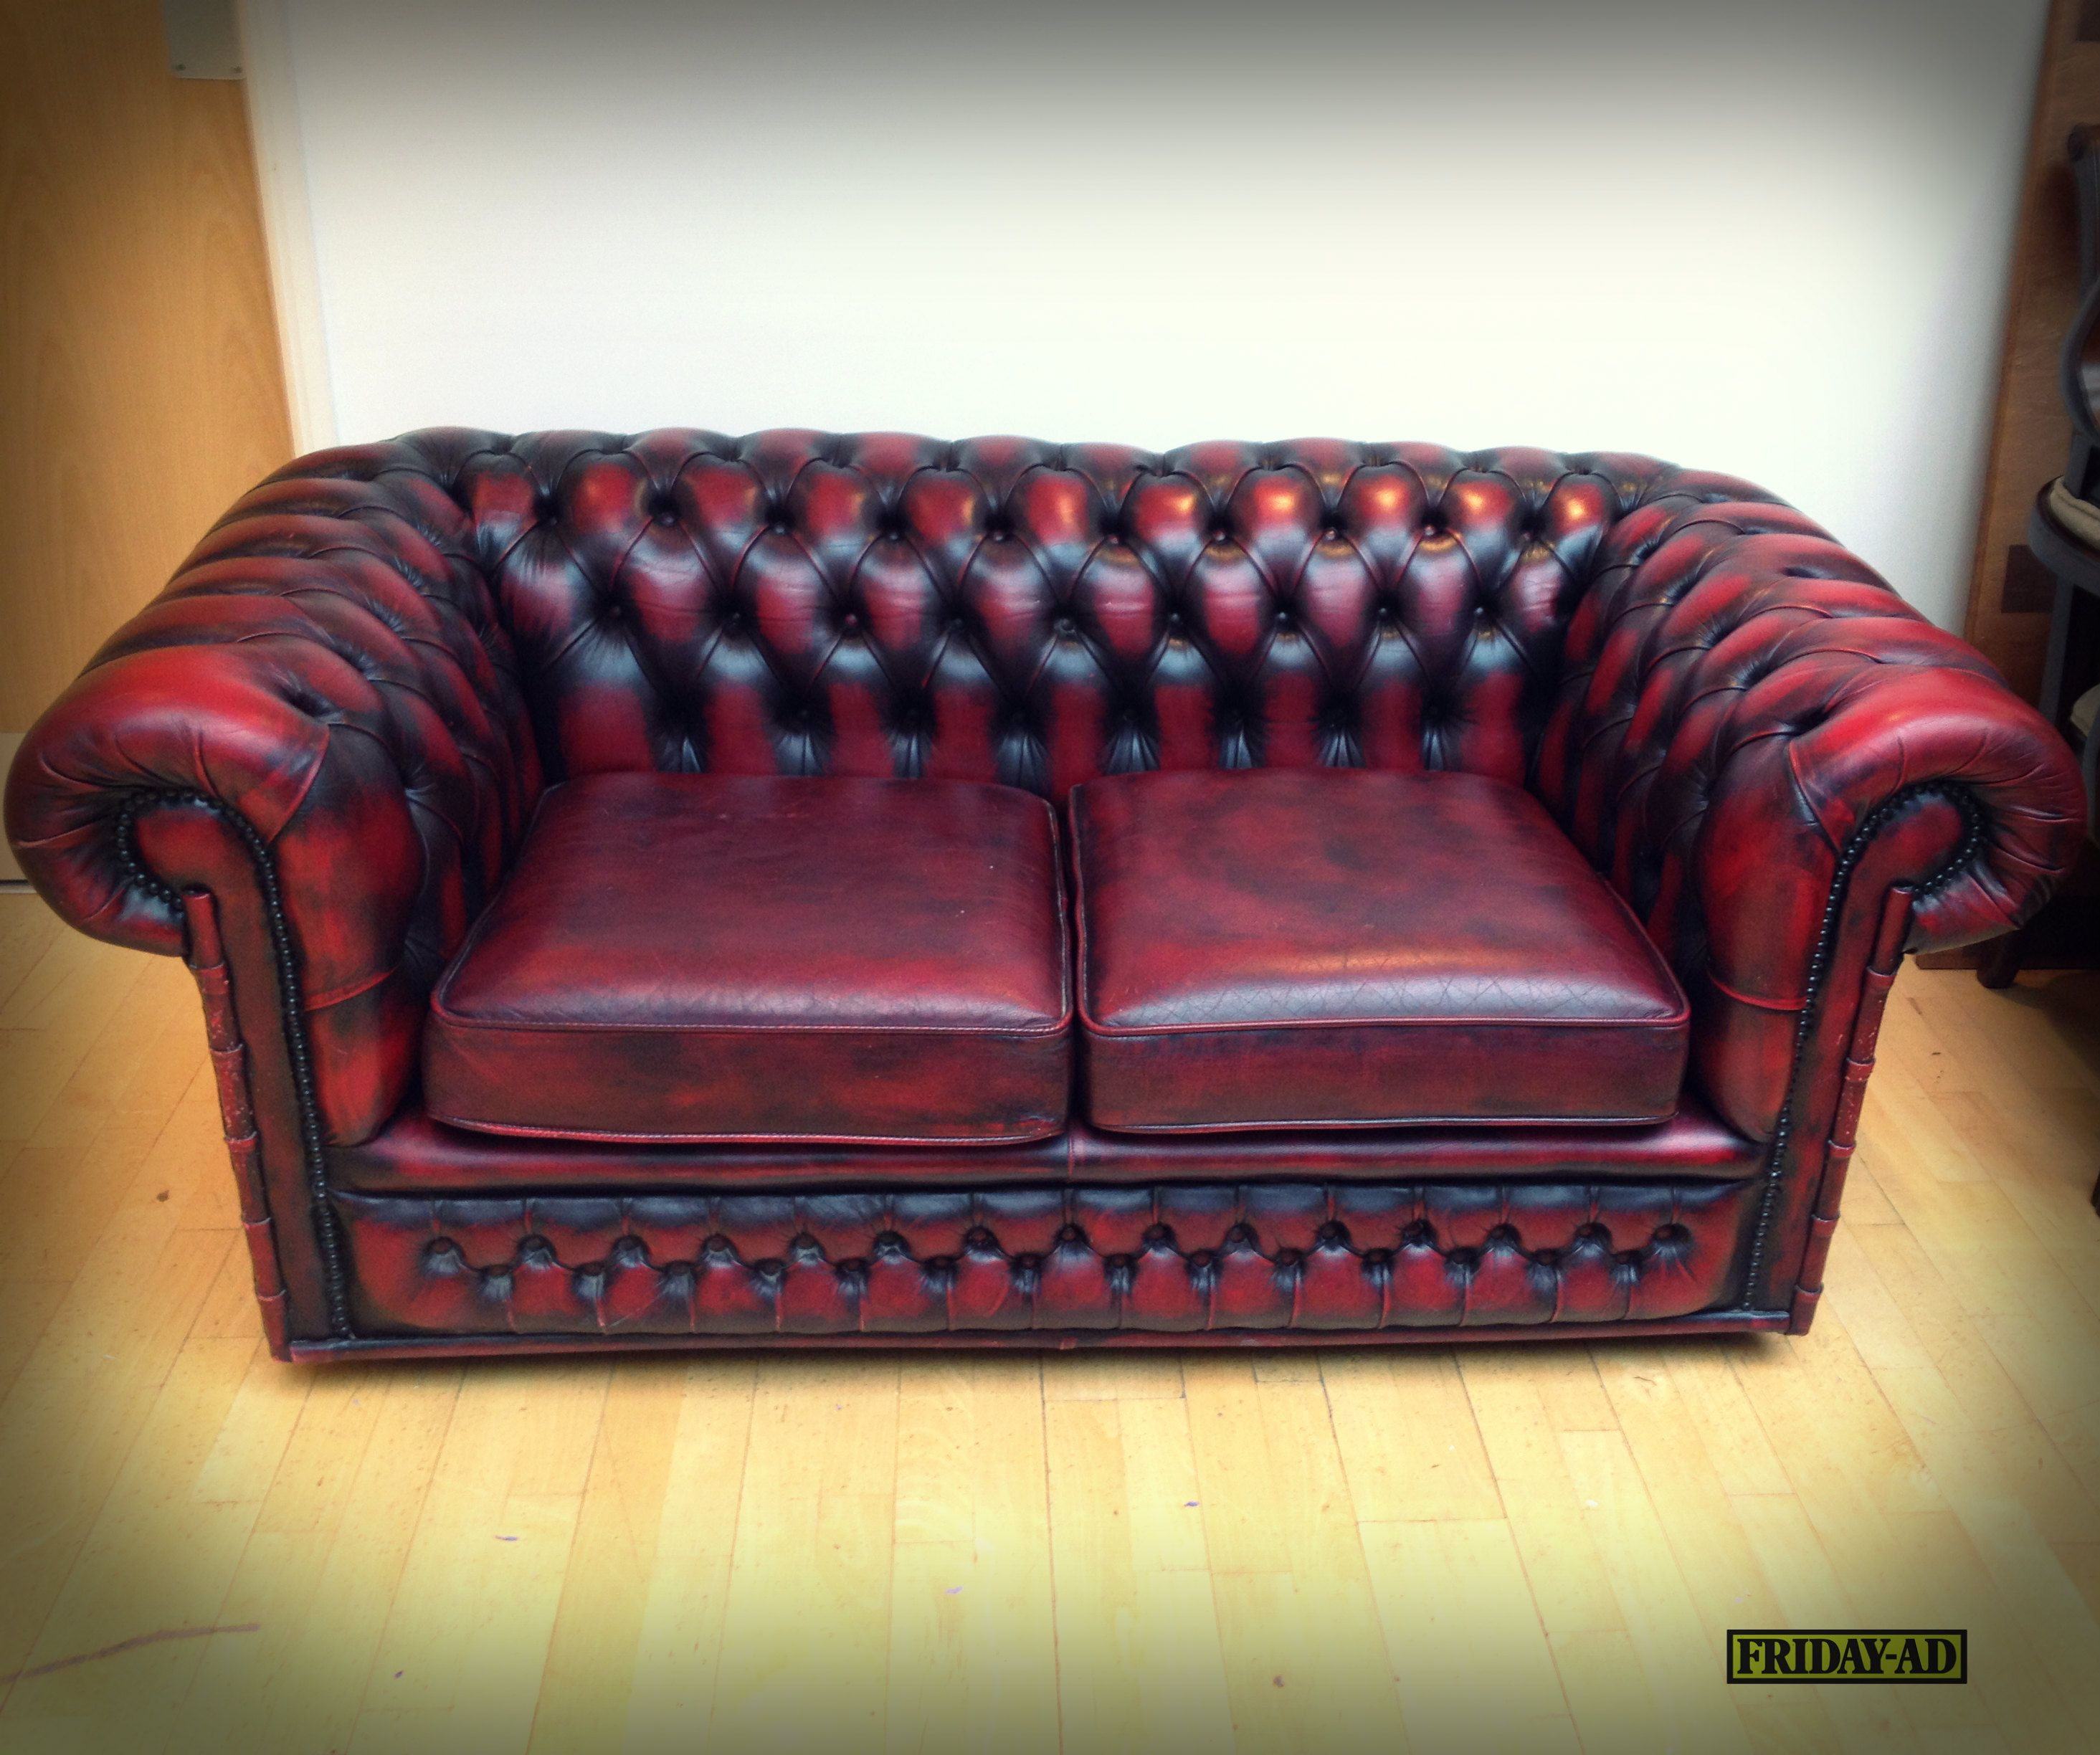 Vintage Chesterfield Sofa! What a great find, only £170